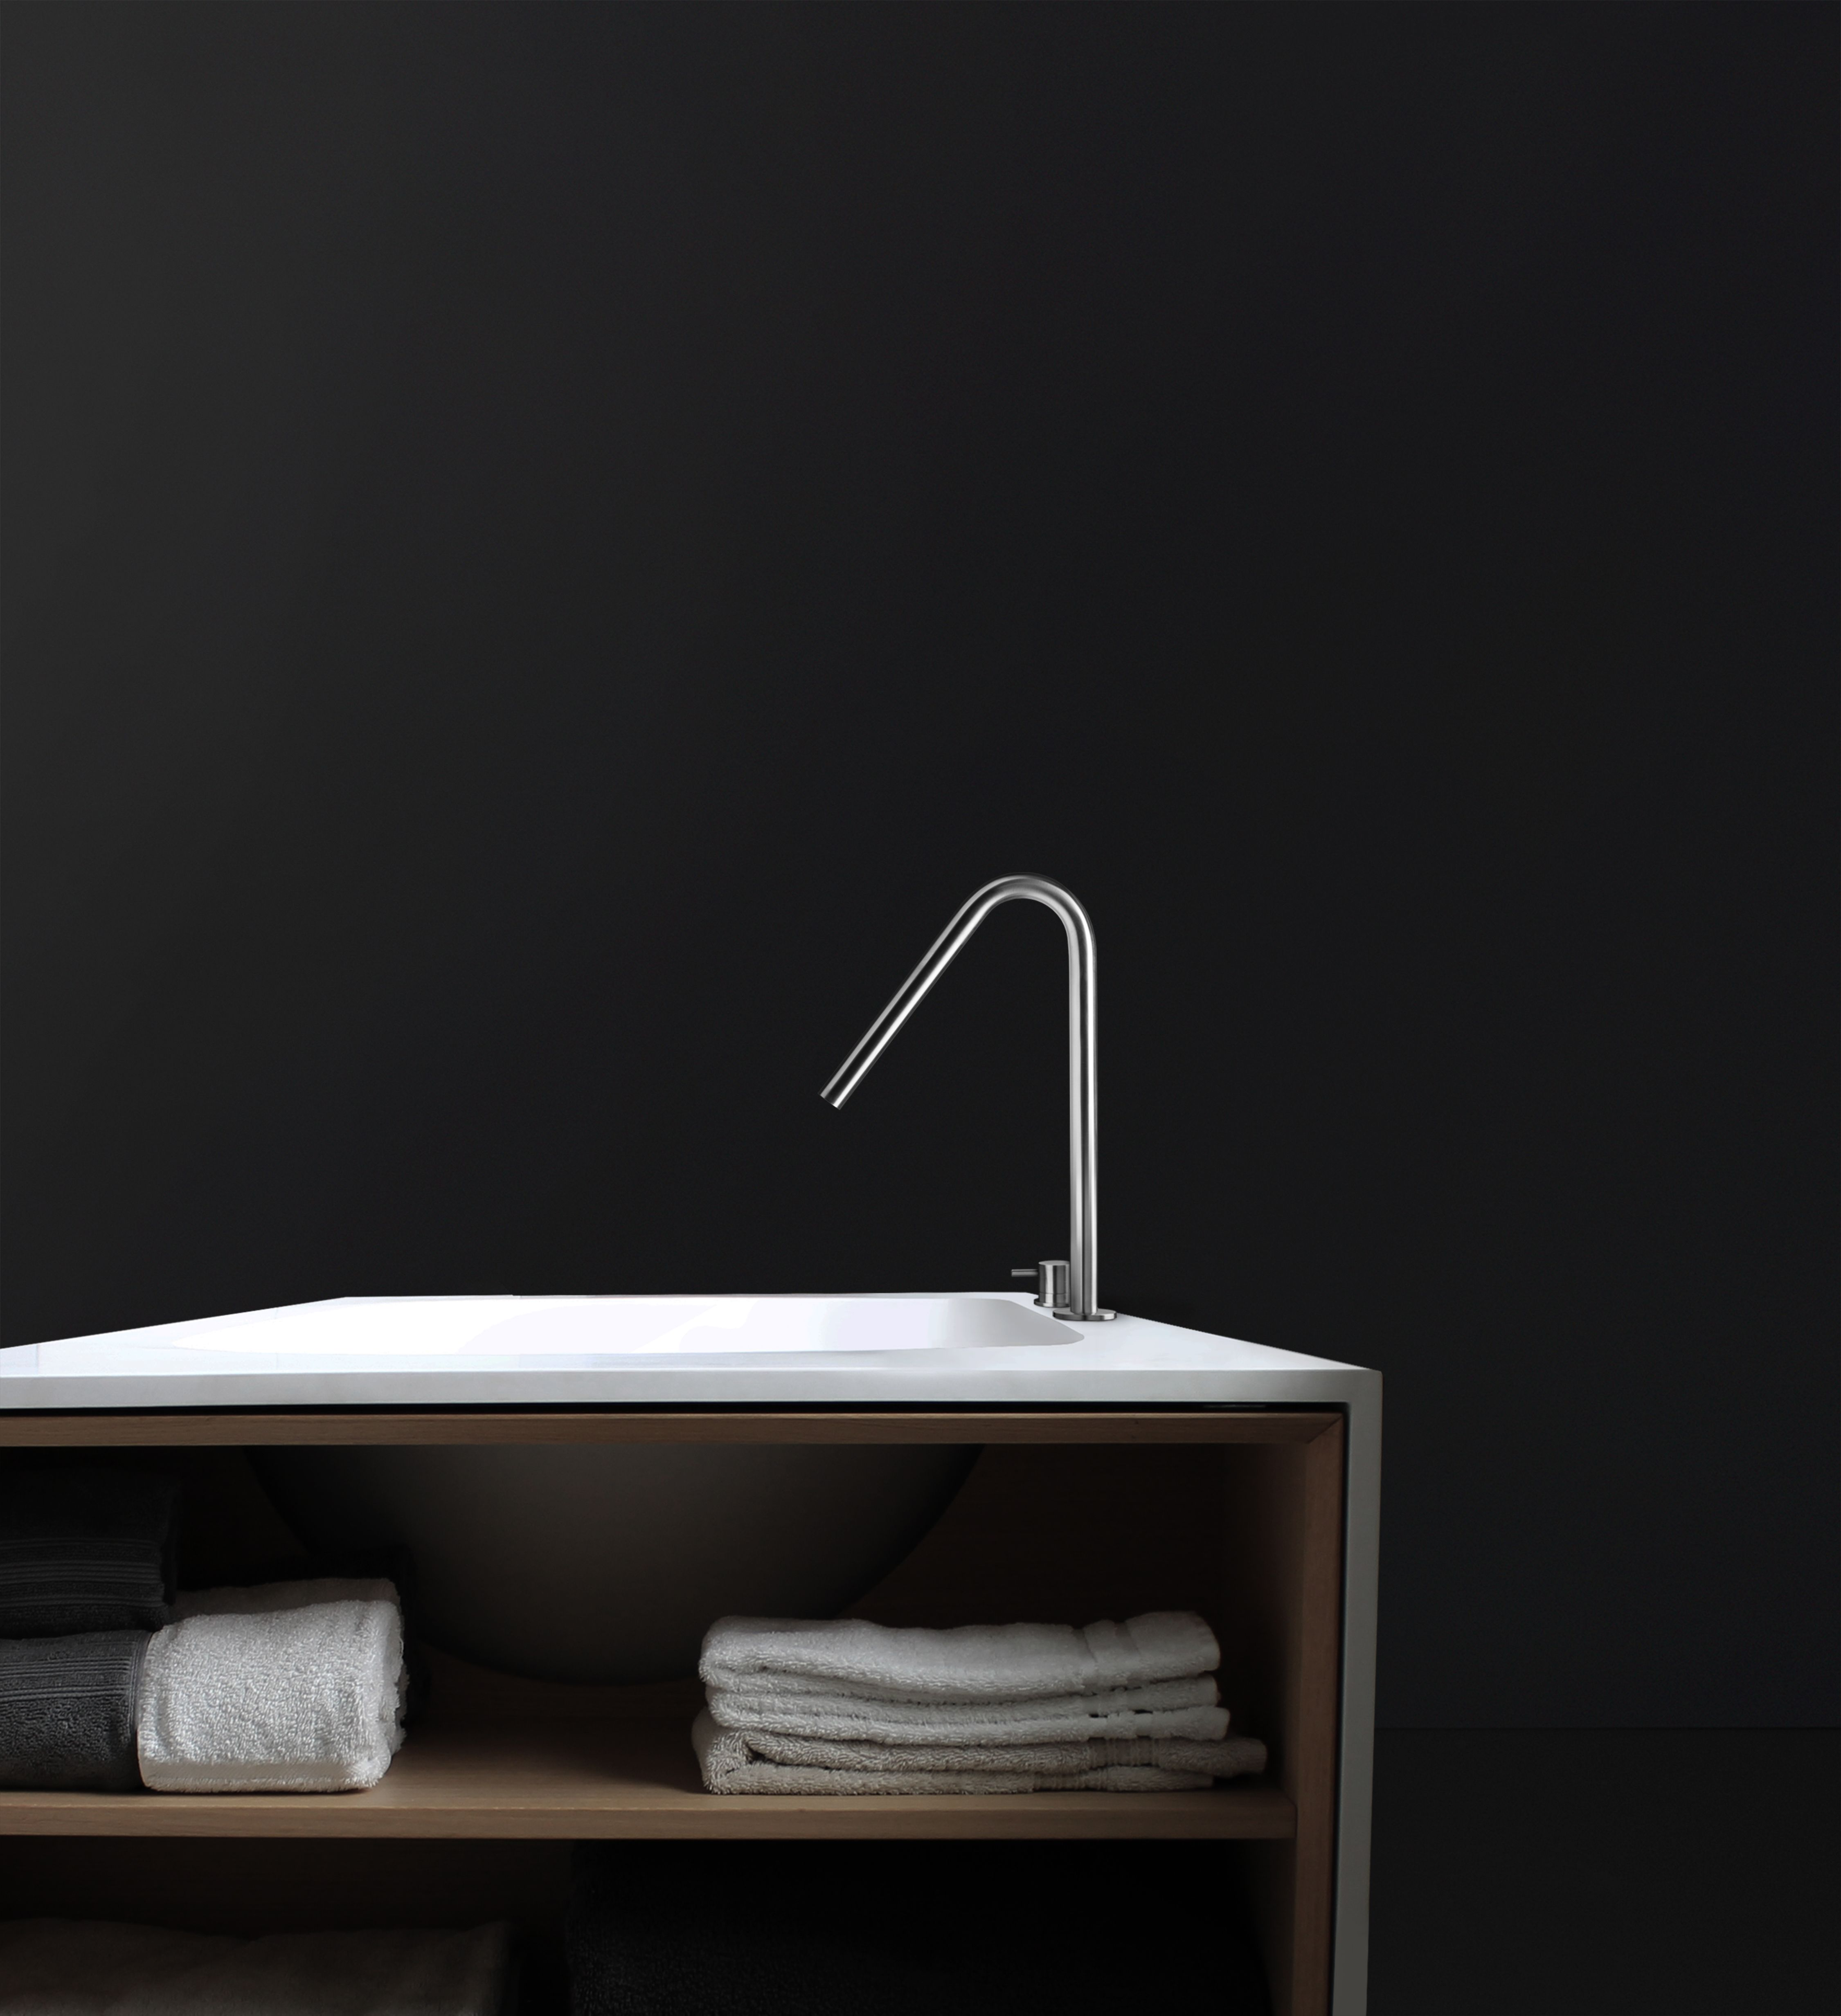 Stainless steel single-hole, deck-mount tubfiller spout Co-ordinating with the INOX stainless steel tapware collection, this modern tubfiller adds an elegant touch to the bathroom with its unique swan-neck spout design.